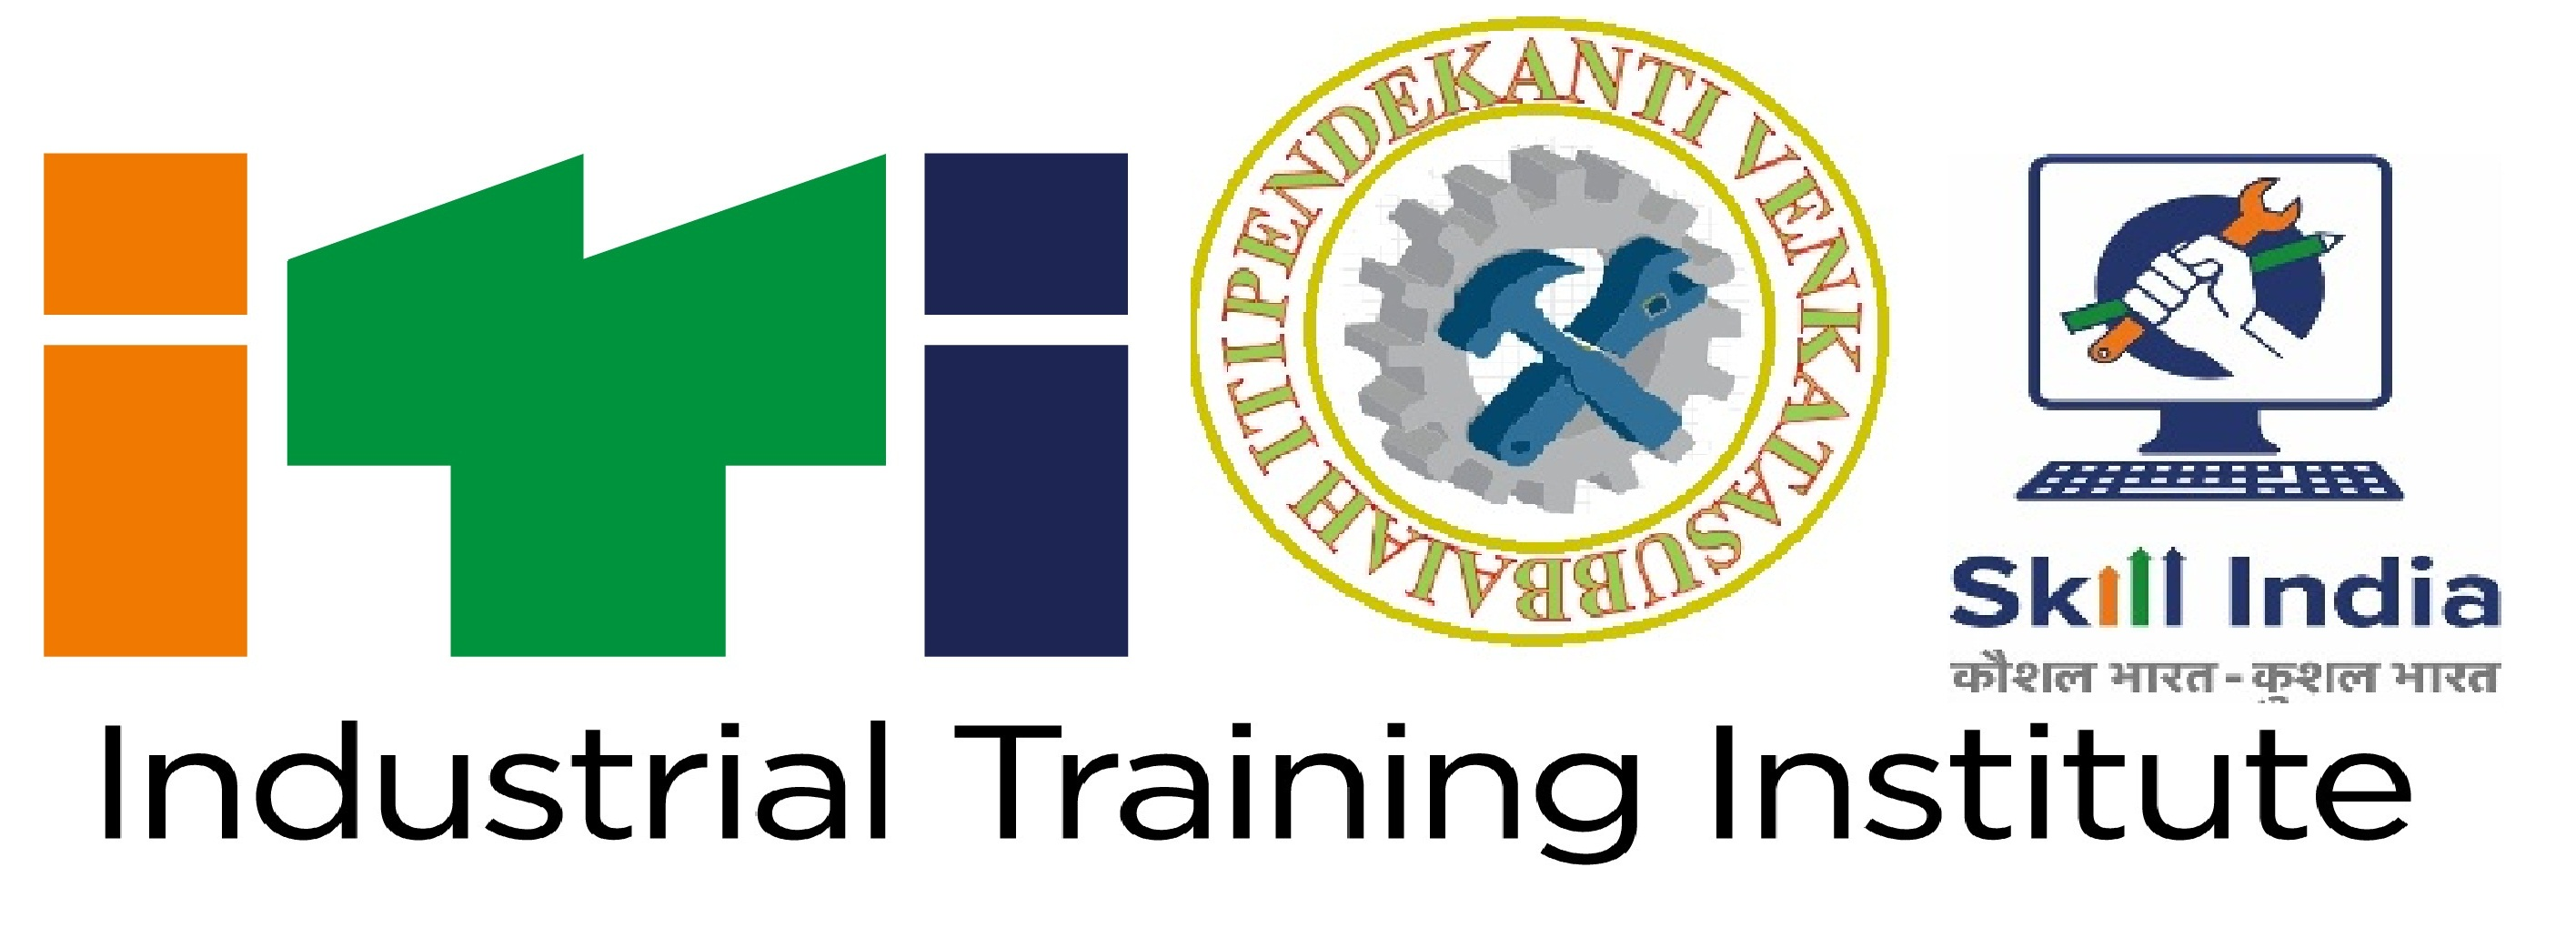 PENDEKANTI VENKATASUBBAIAH (PRIVATE) INDUSTRIAL TRAINING INSTITUTE